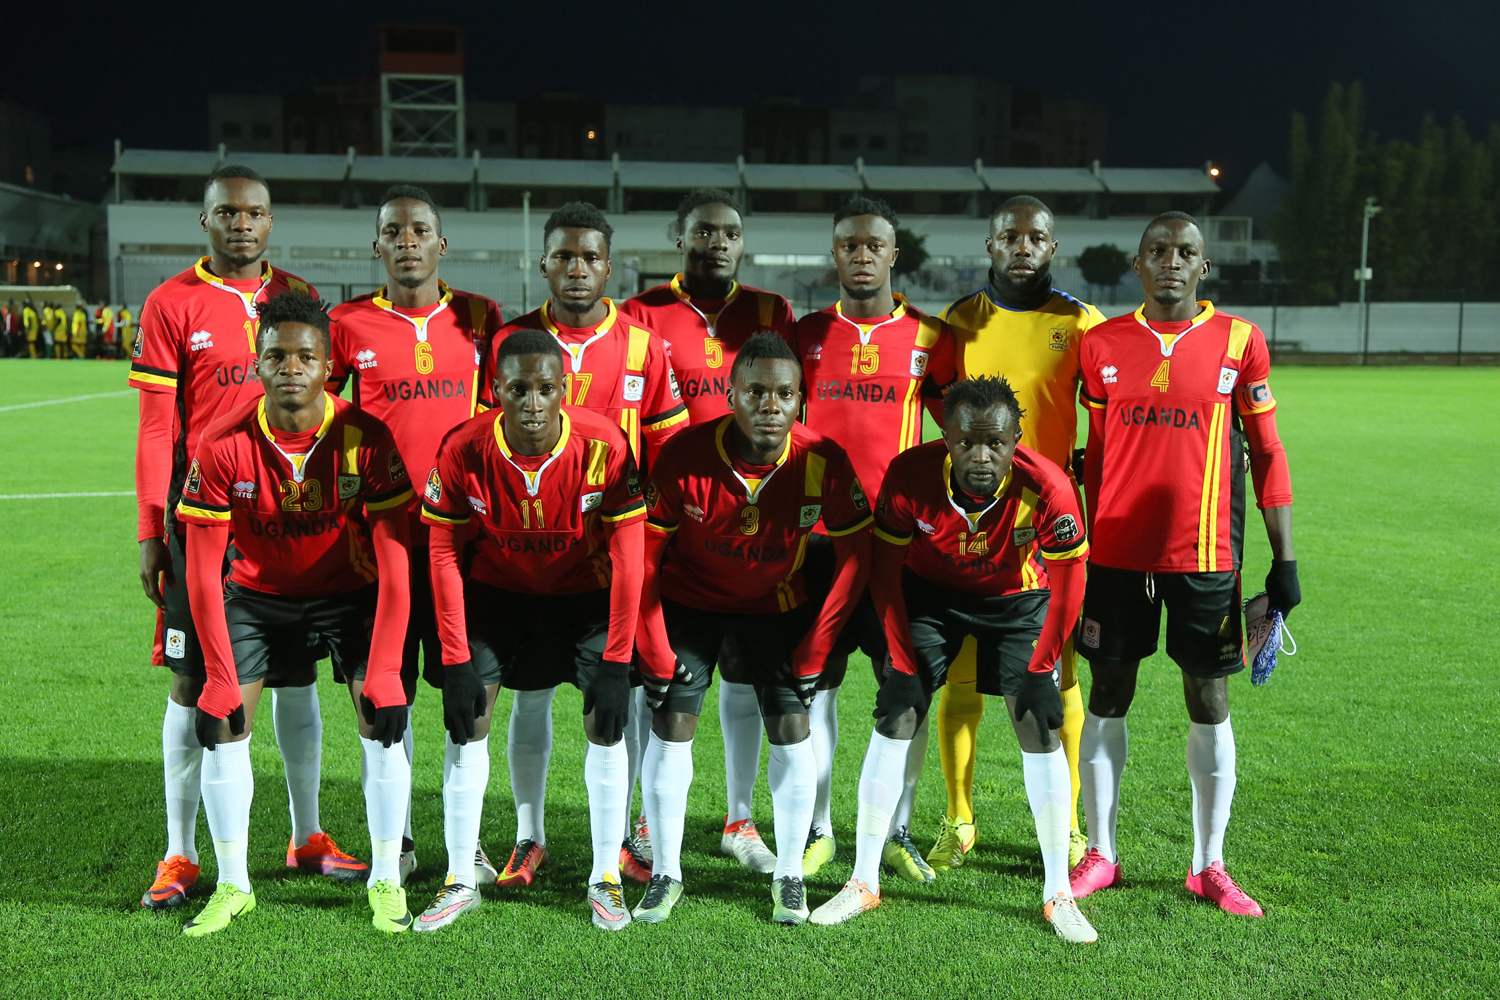 Pic 1. Cranes team that started against Guinea in 1-1 draw on Saturday